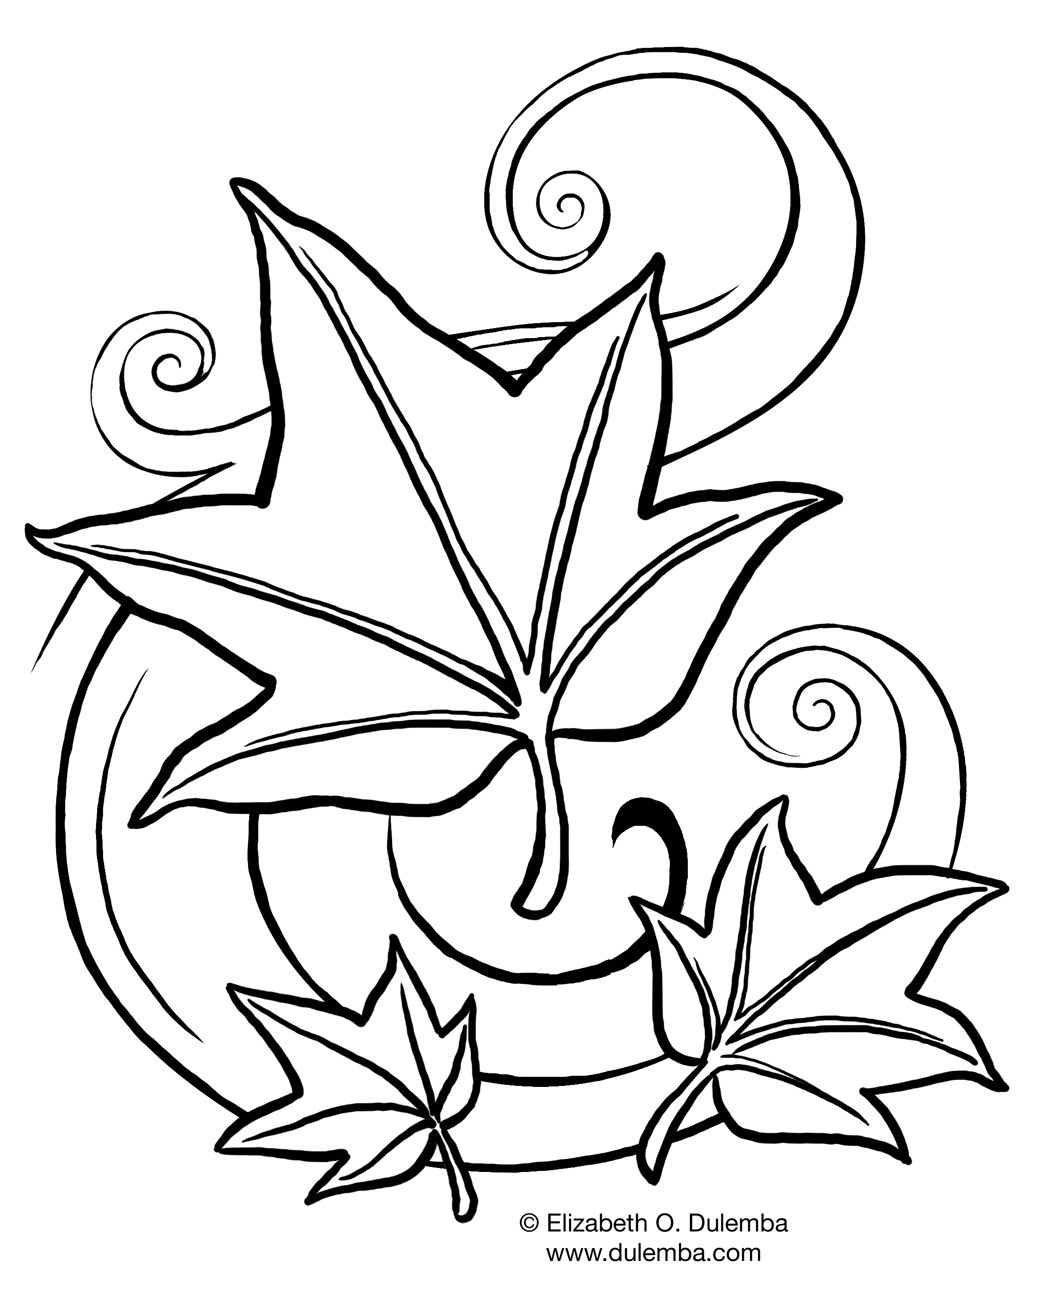 Fall Flowers Coloring Pages Printable 16g - Save it to your computer